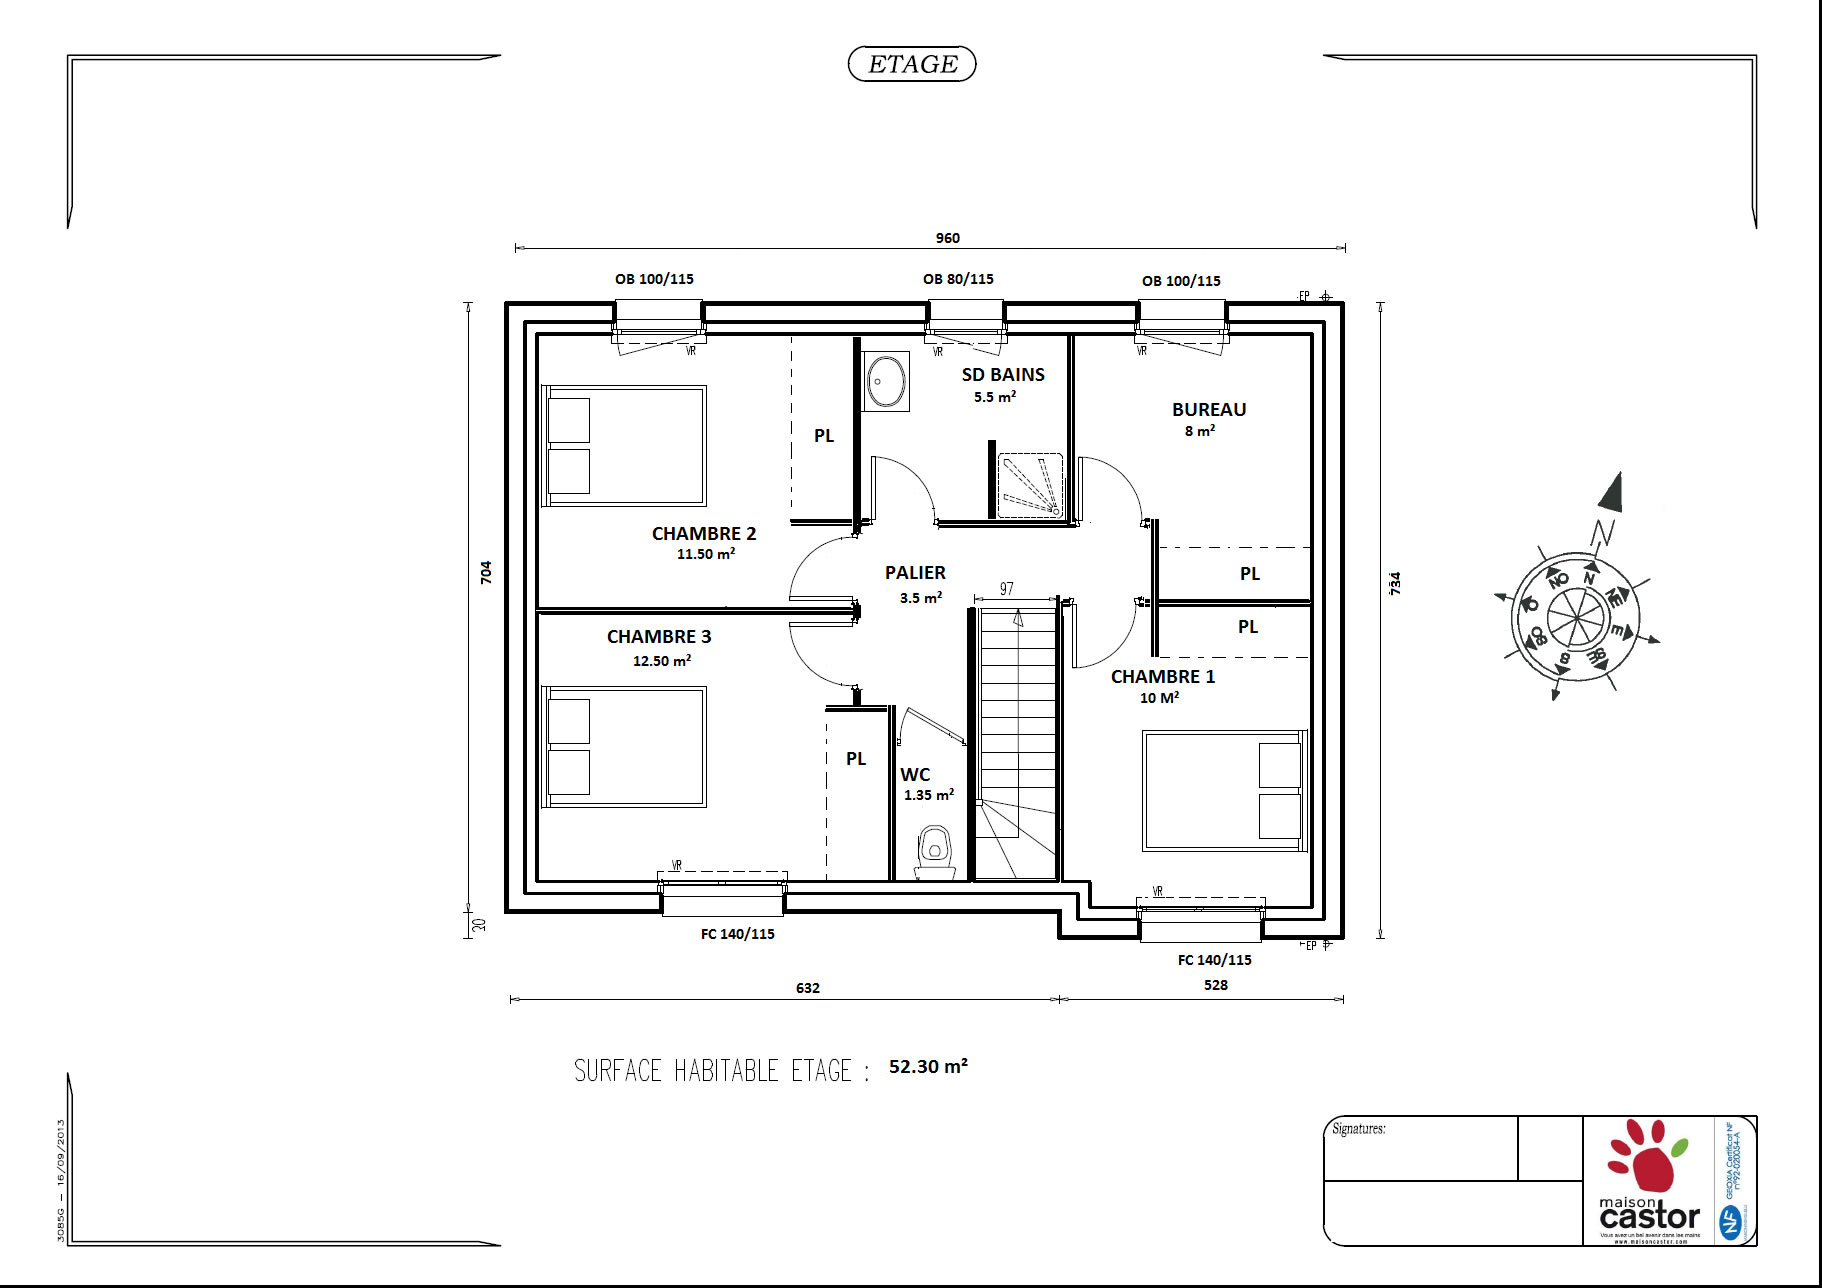 Plan maison r 1 de 92m2 13 messages - Plan maison 100m2 a etage ...